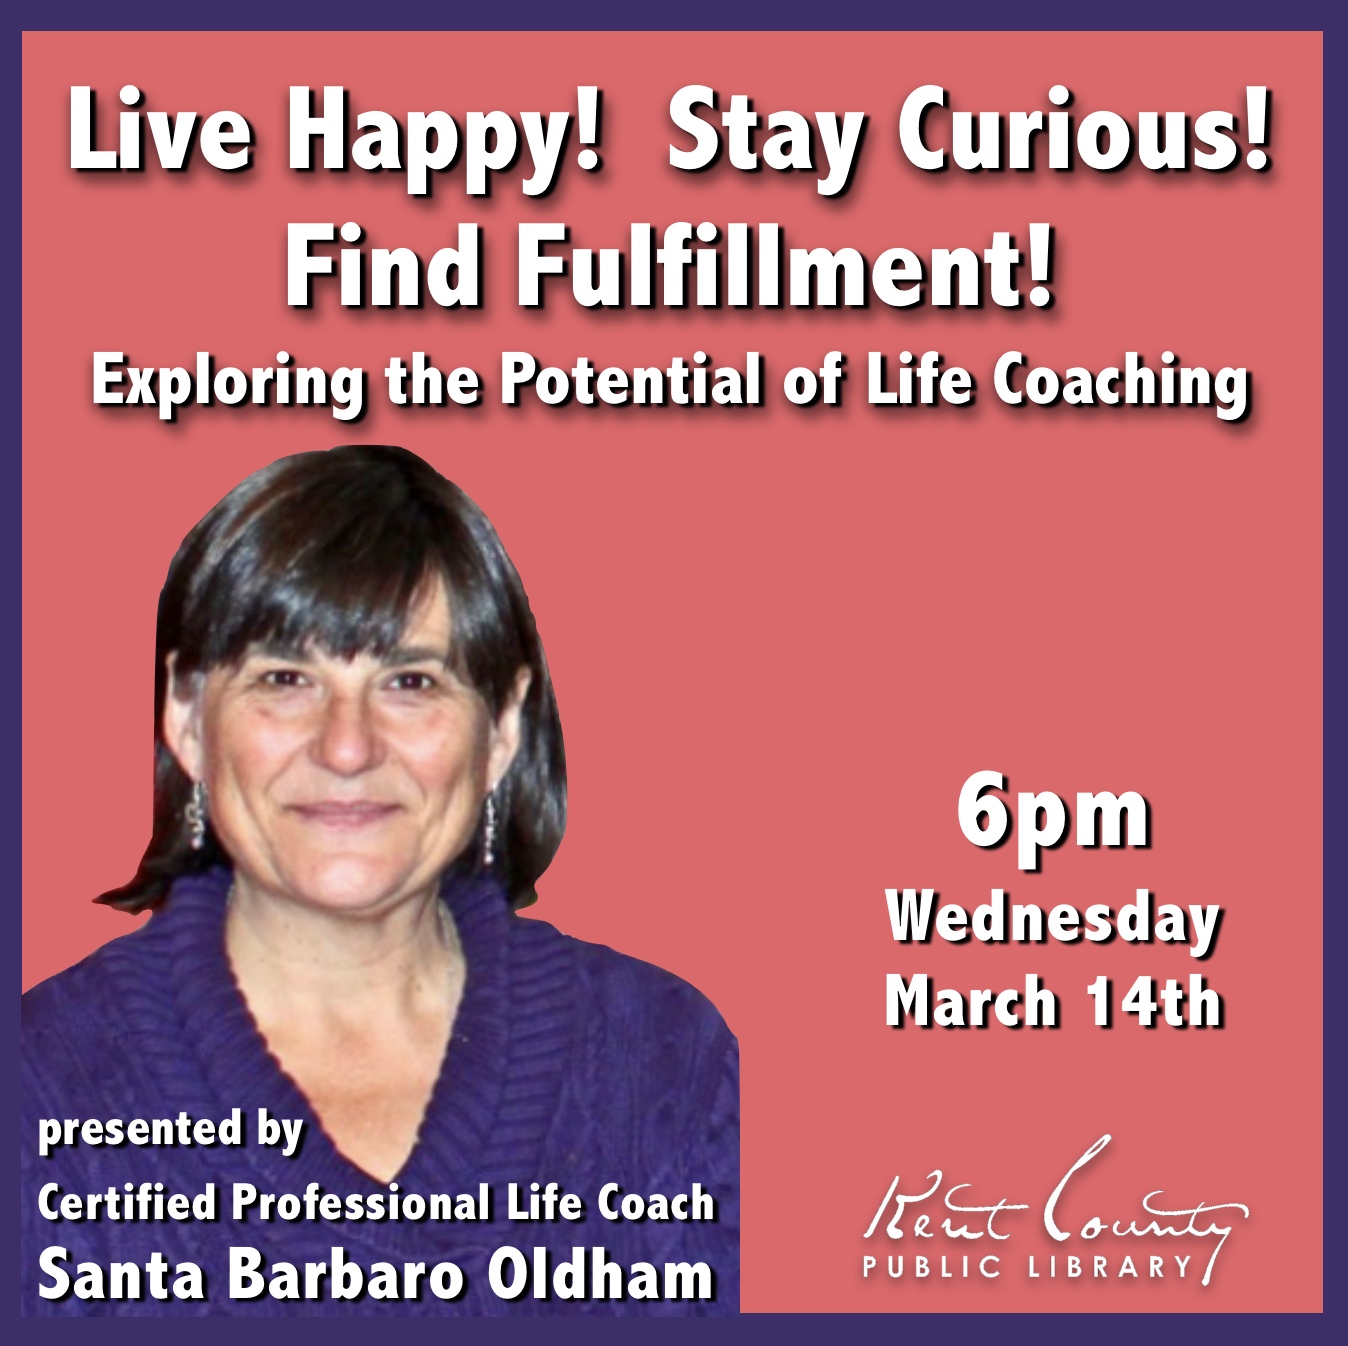 Live Happy! Stay Curious! Find Fulfillment! - Exploring the Potential of Life Coaching